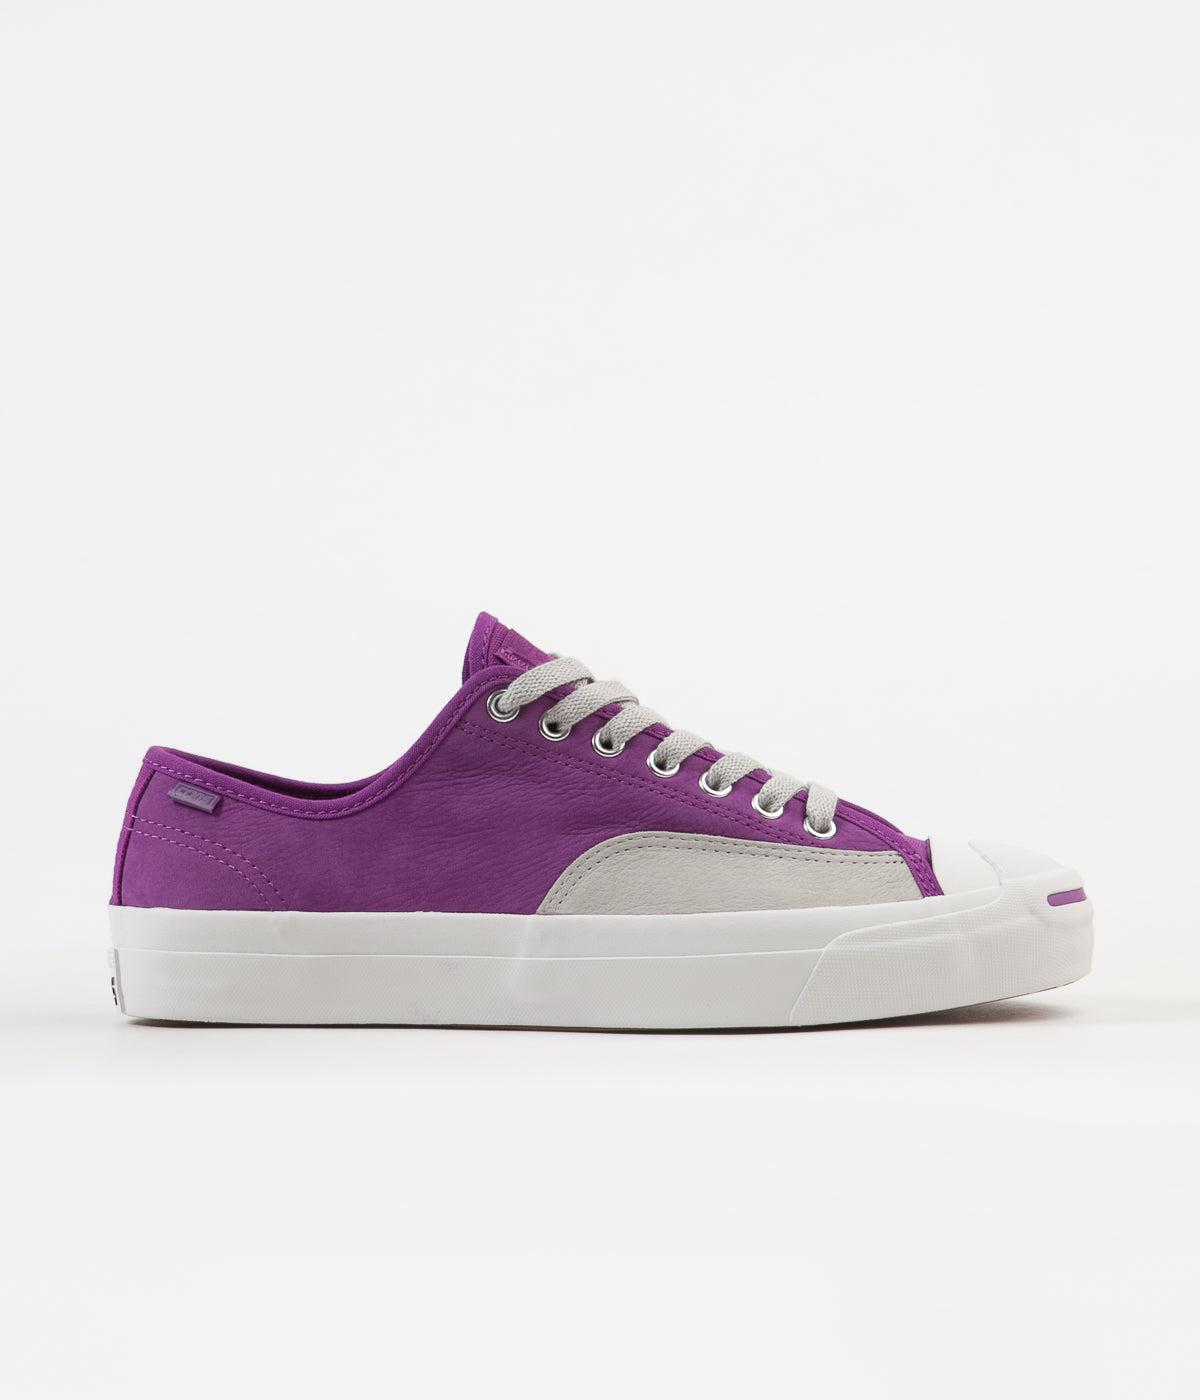 8bcd880b8a96 ... Converse Jack Purcell Pro Ox Shoes - Icon Violet   Pale Grey ...